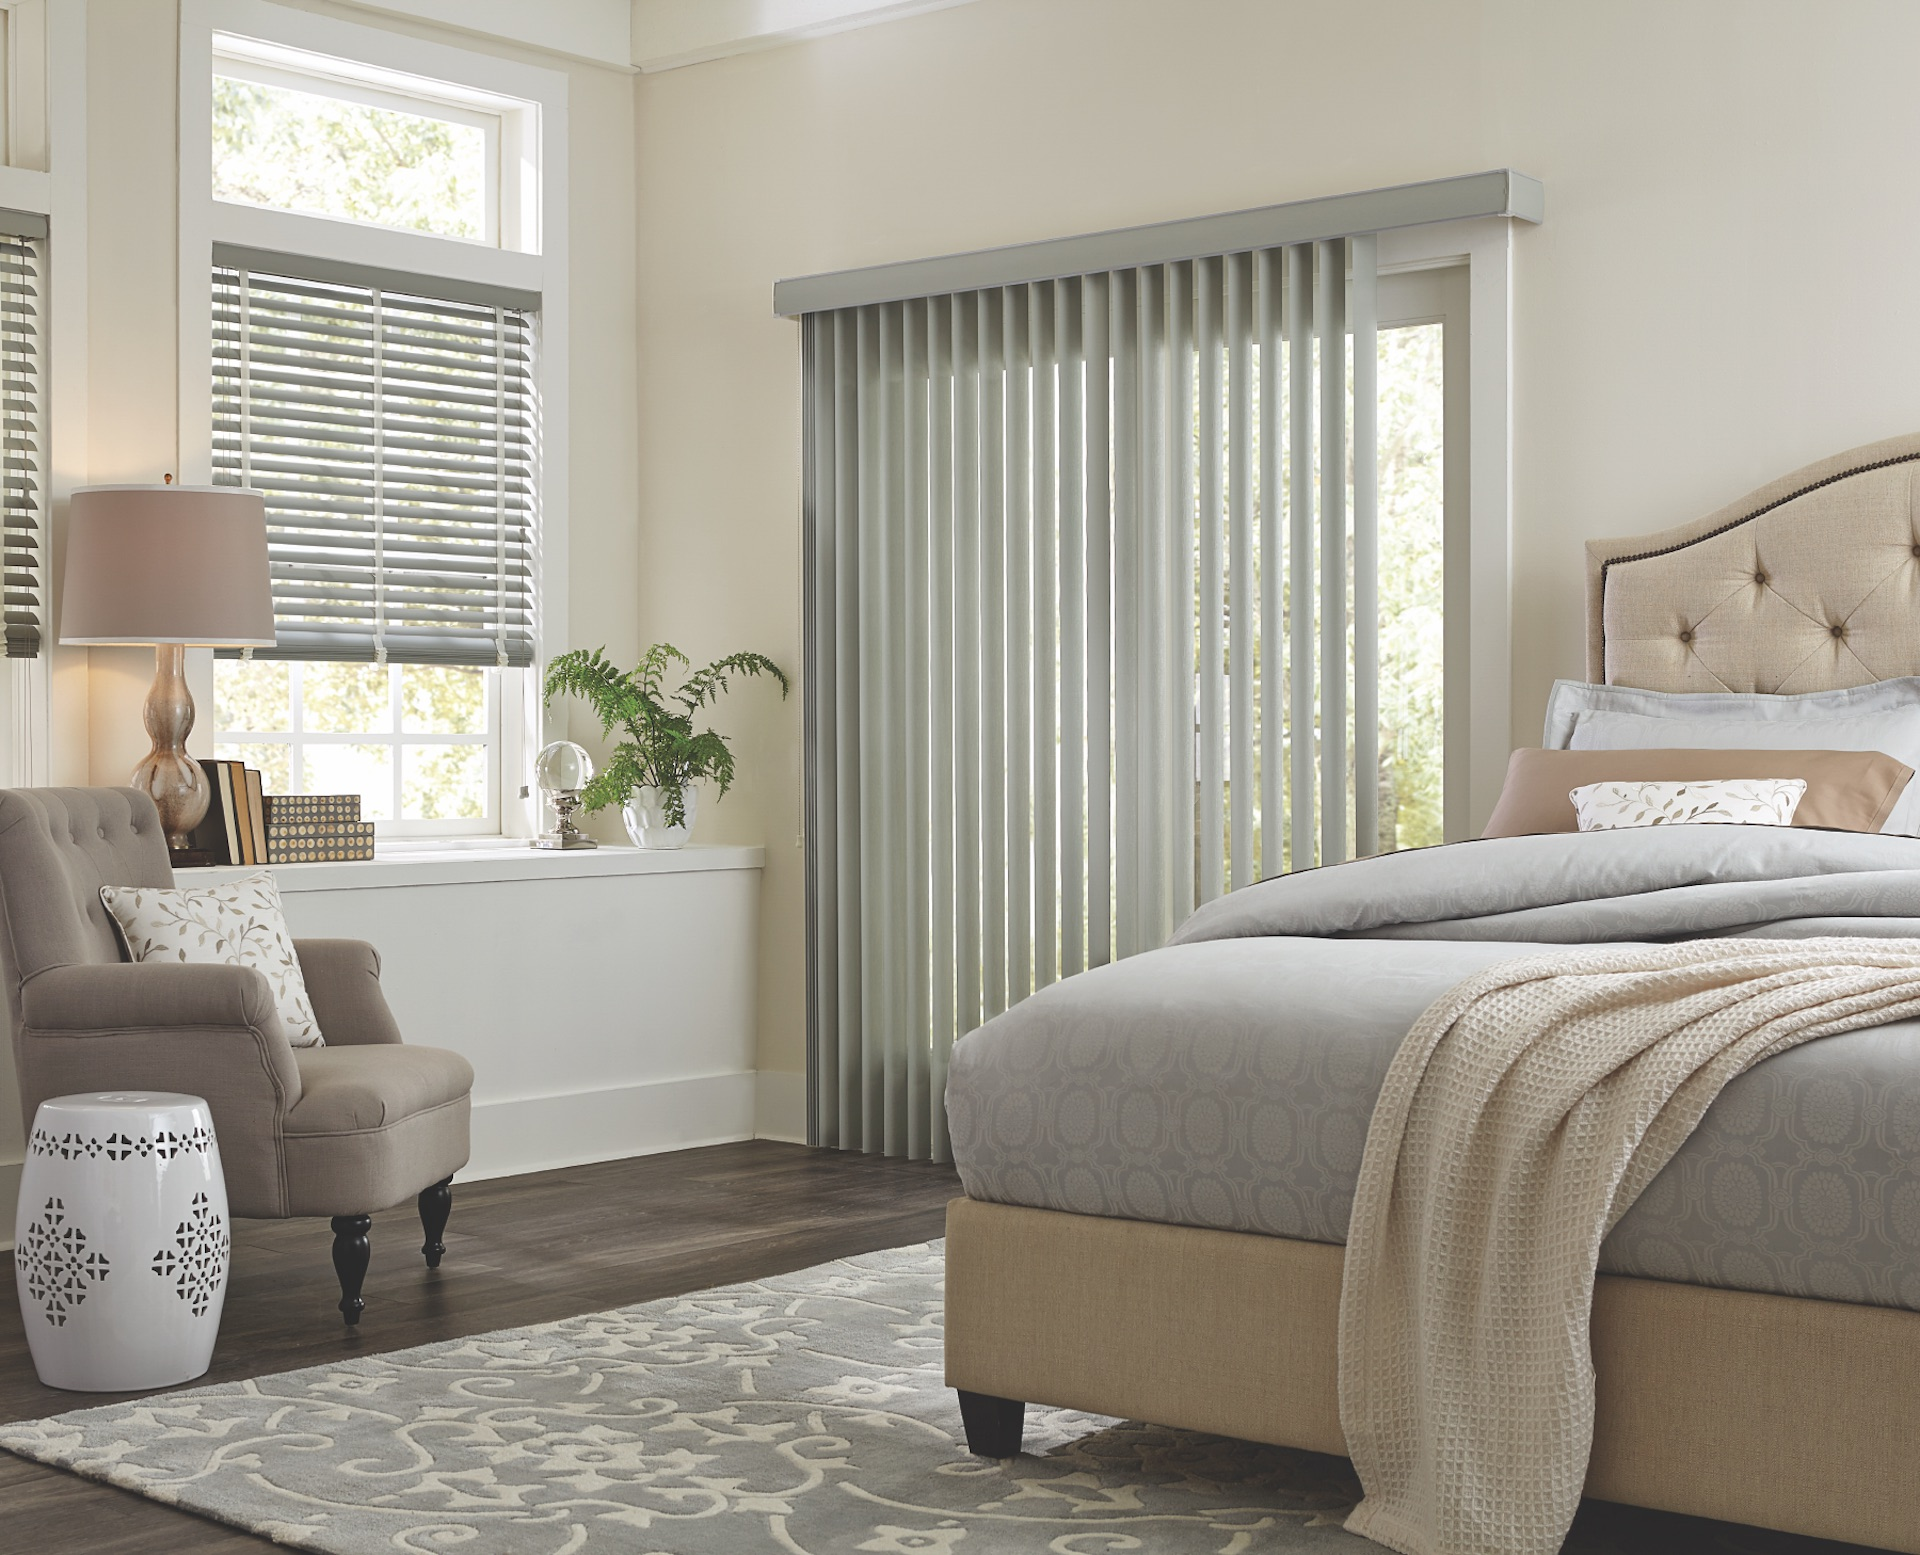 Window Shades - Roman Shades, Roller Shades, Solar Shades, Cellular Shades, & more - Dynamic Delivery Blinds | Nashville, TN